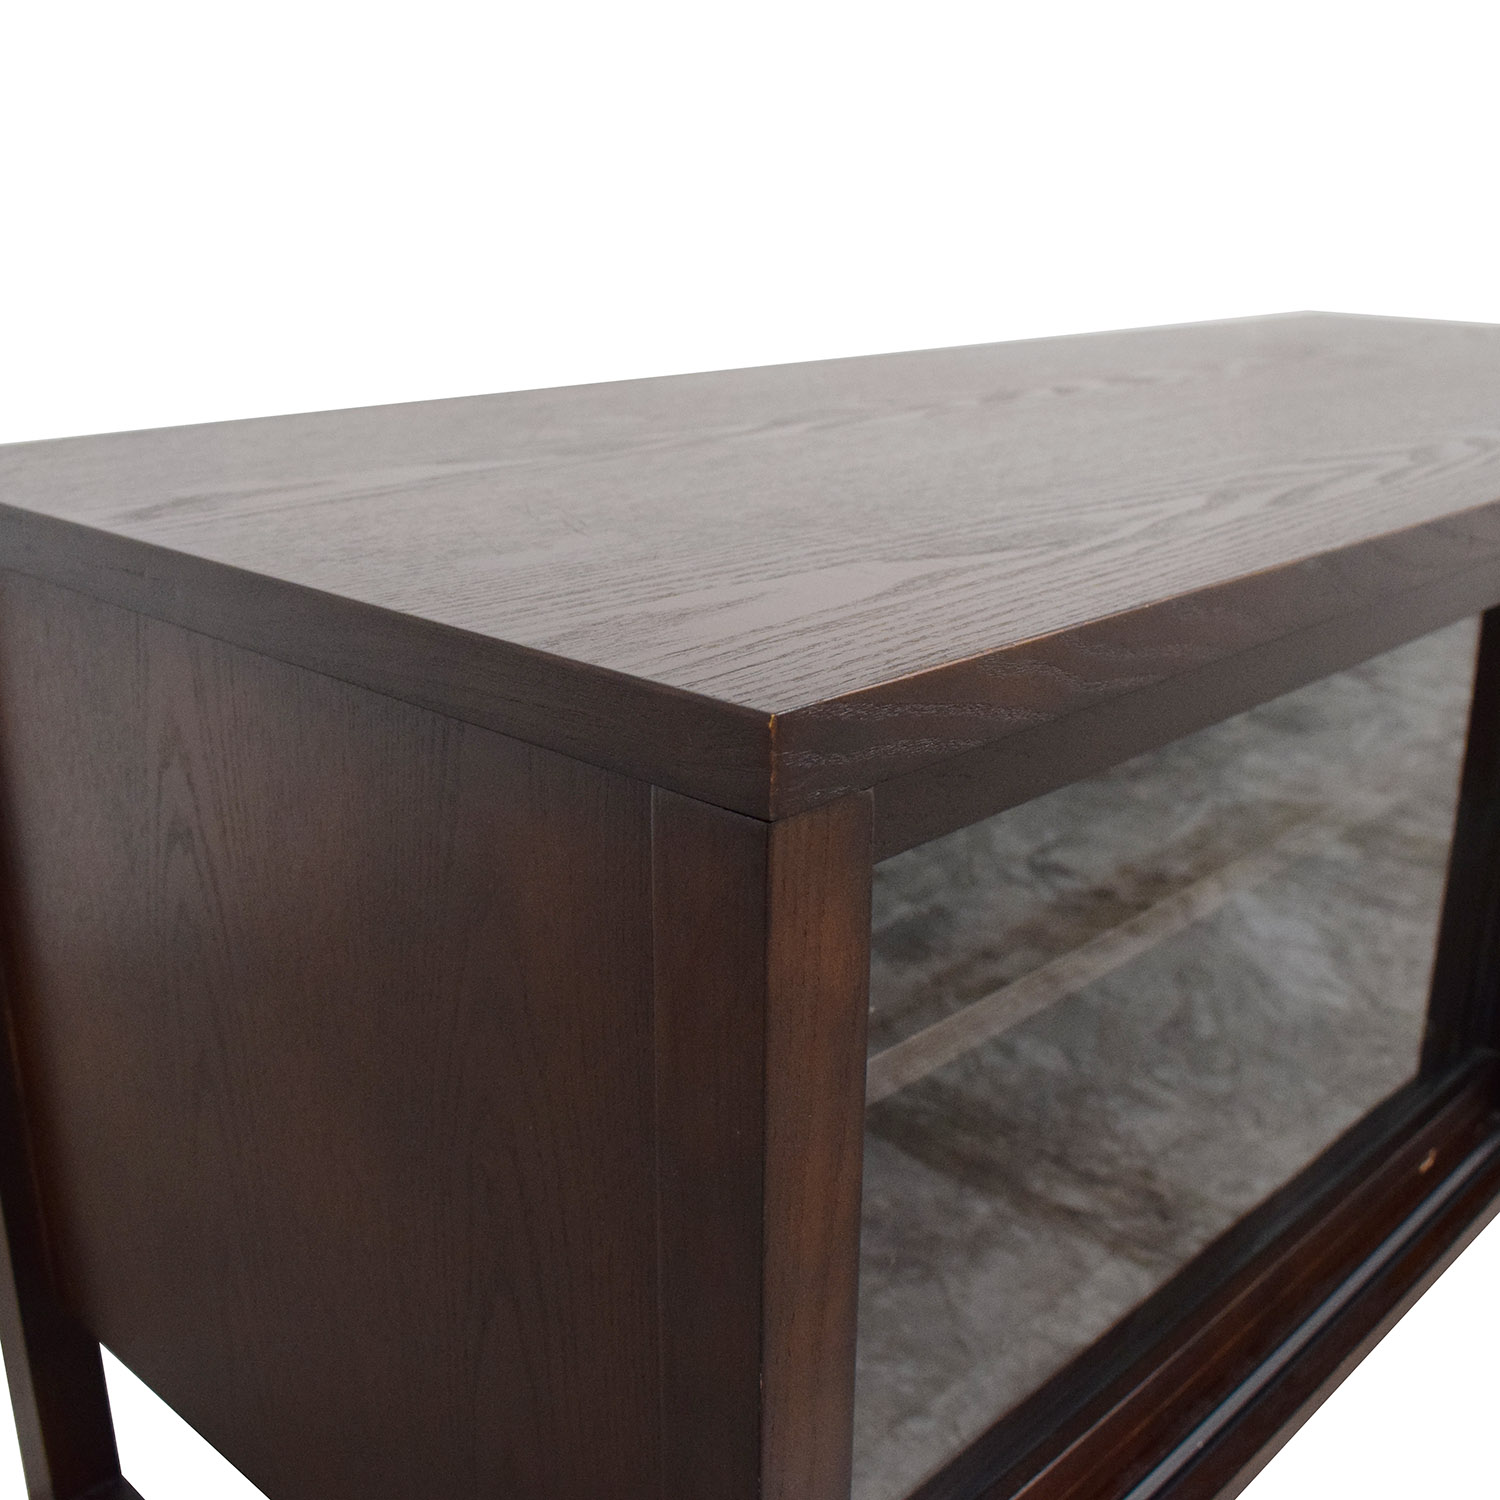 West Elm Media Console / Storage